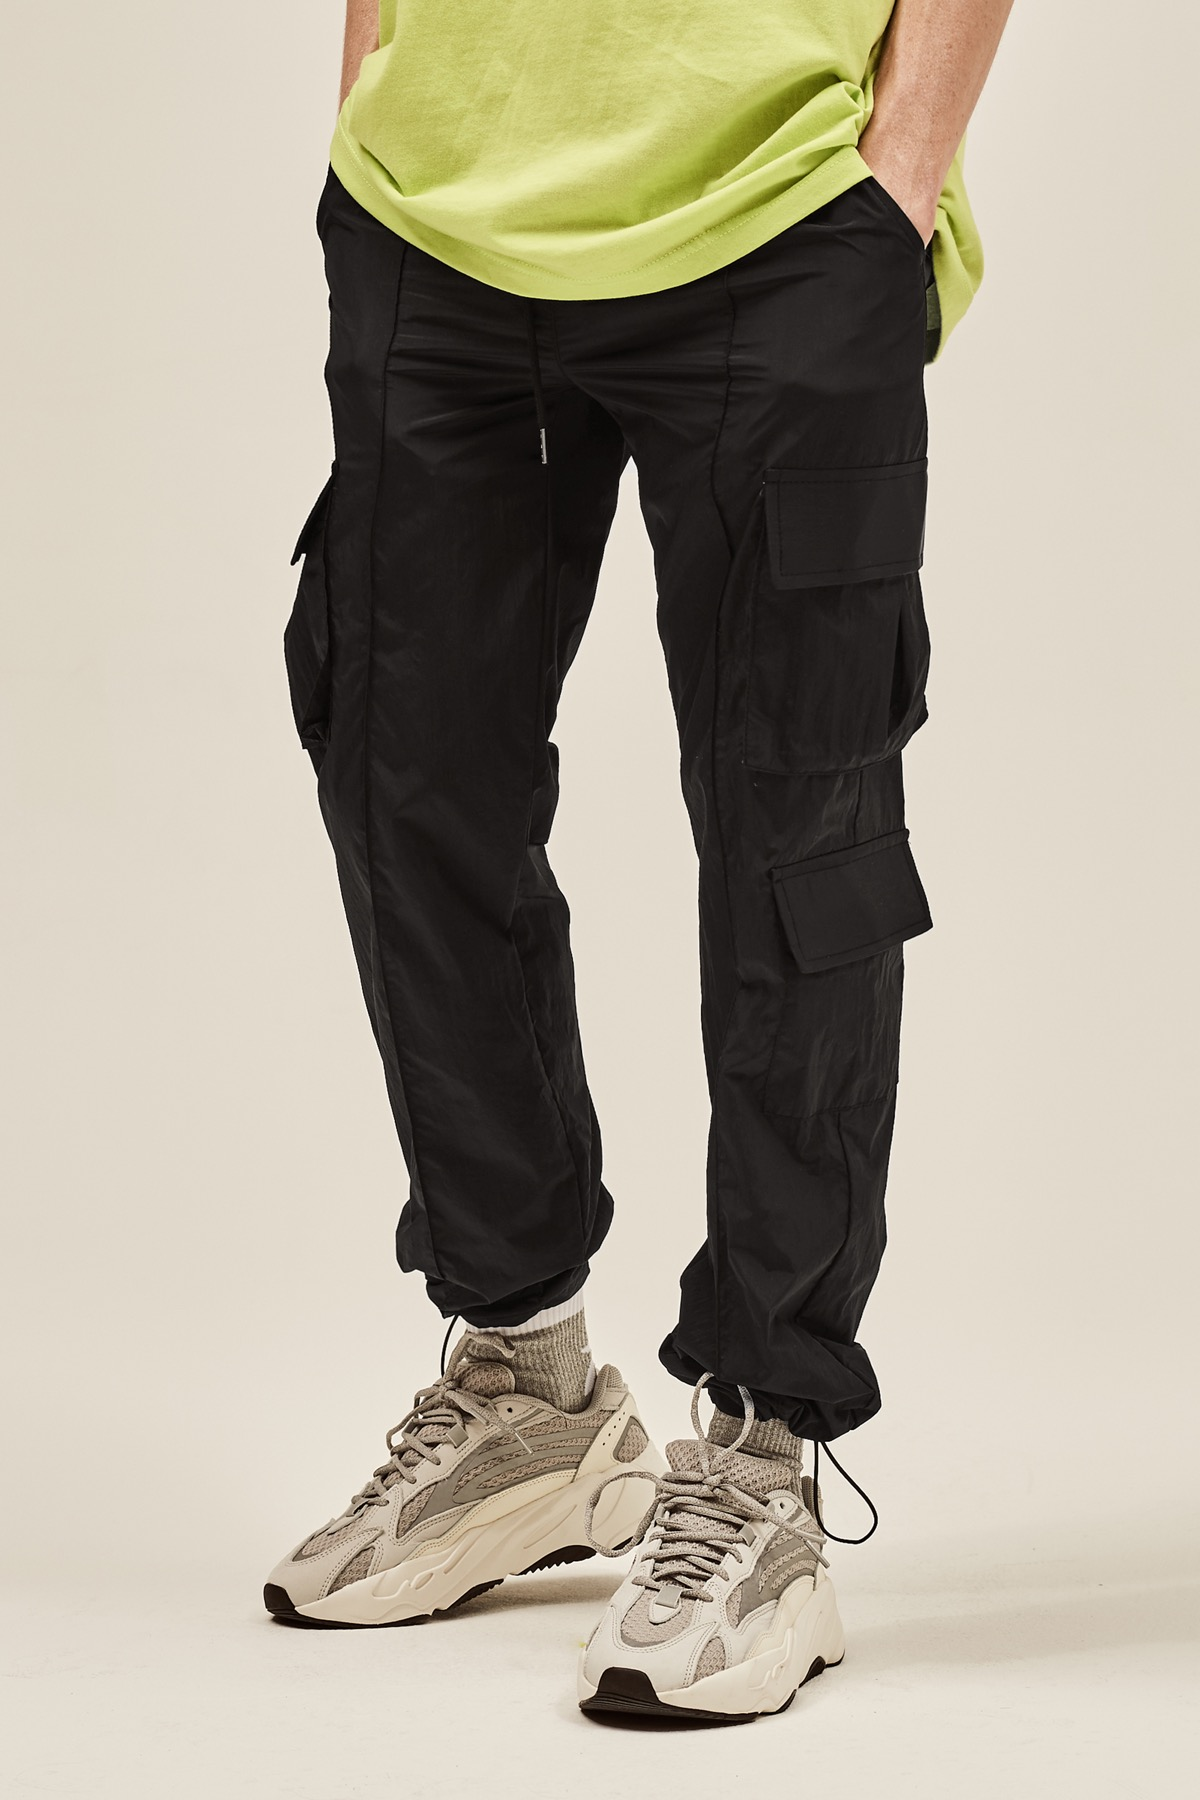 BLACK NYLON METAL CARGO STRING PANTS